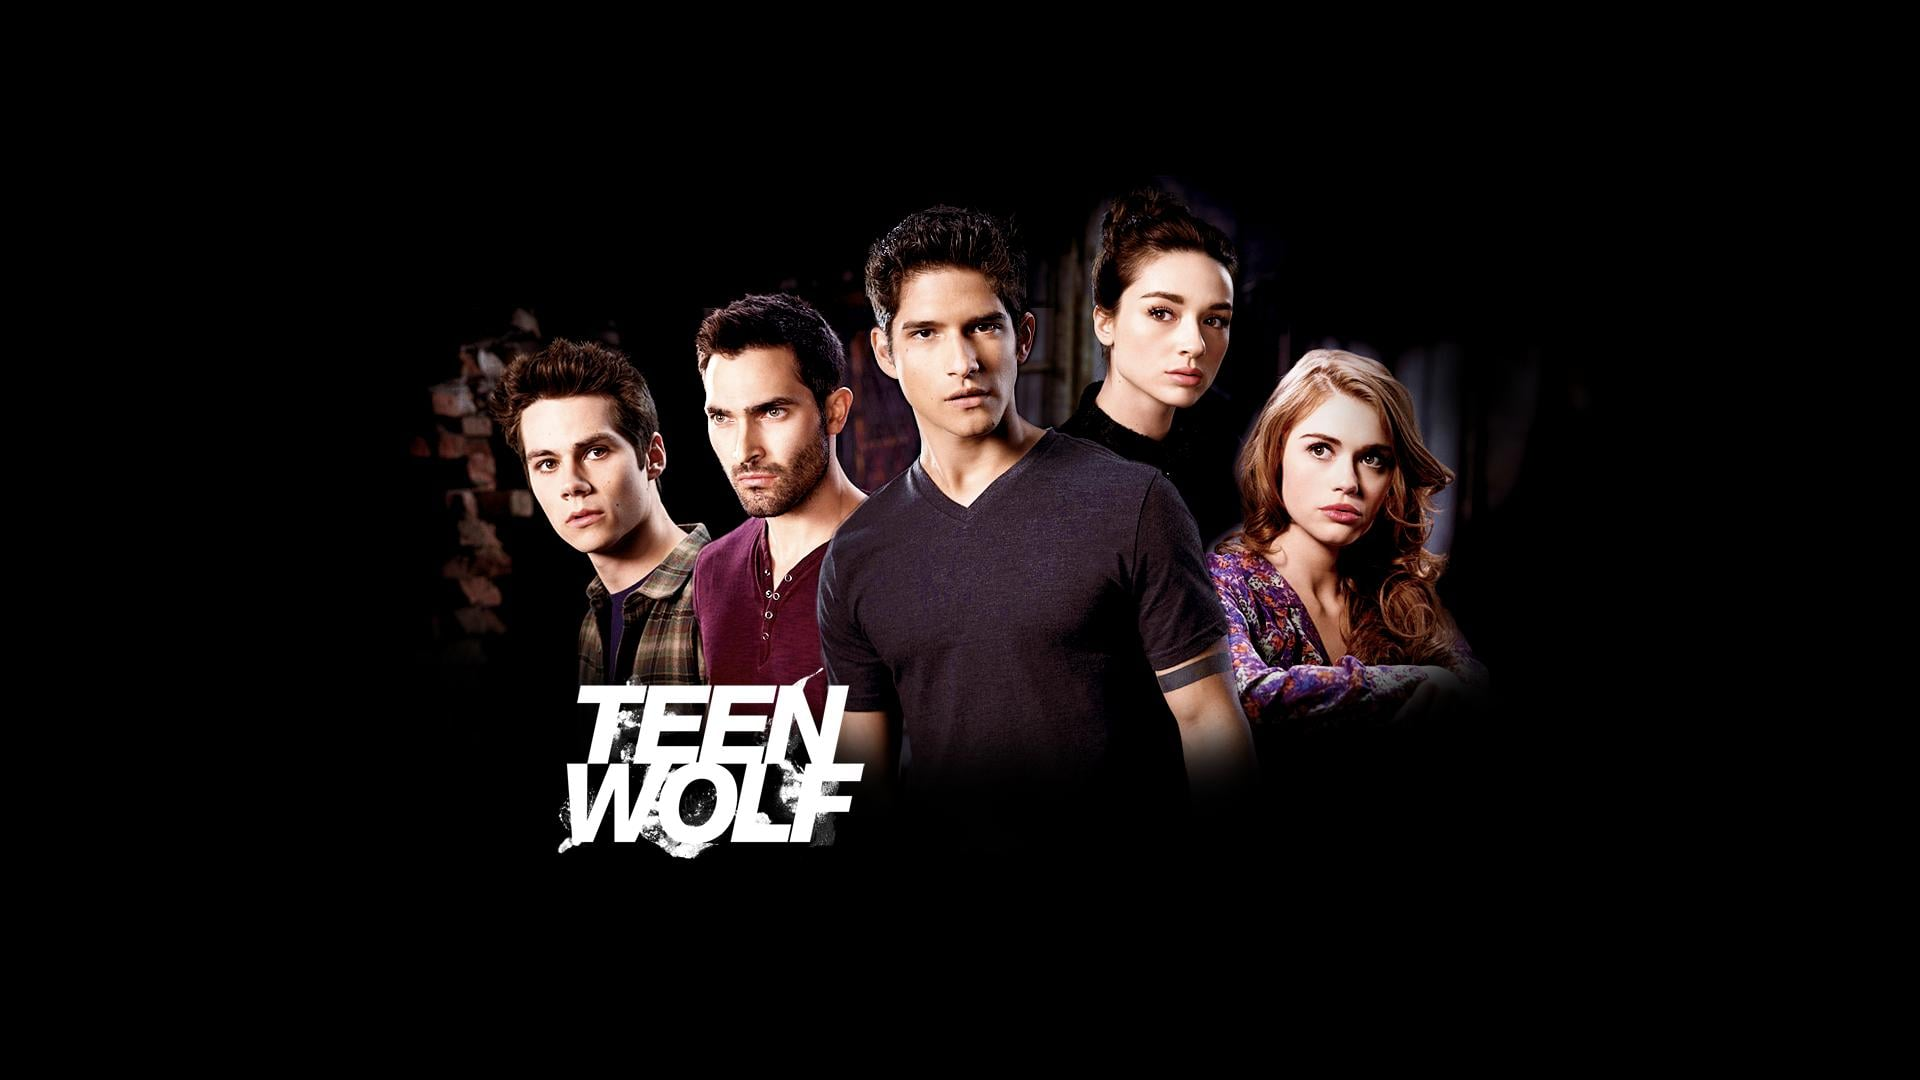 Teen Wolf TV free download